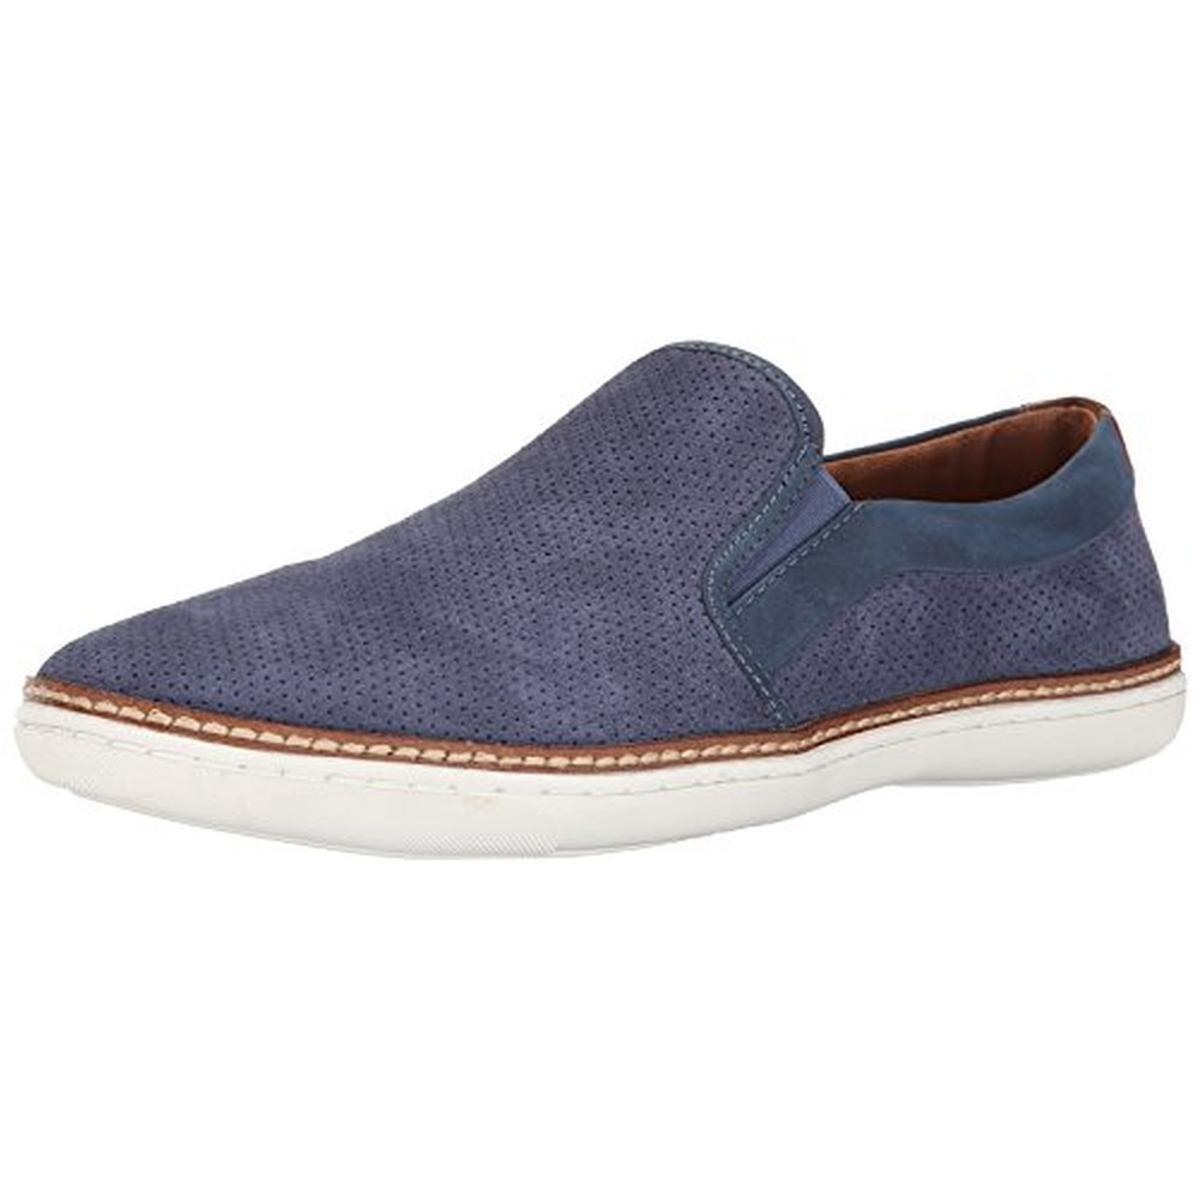 steve madden 5095 mens ferrow suede perforated casual